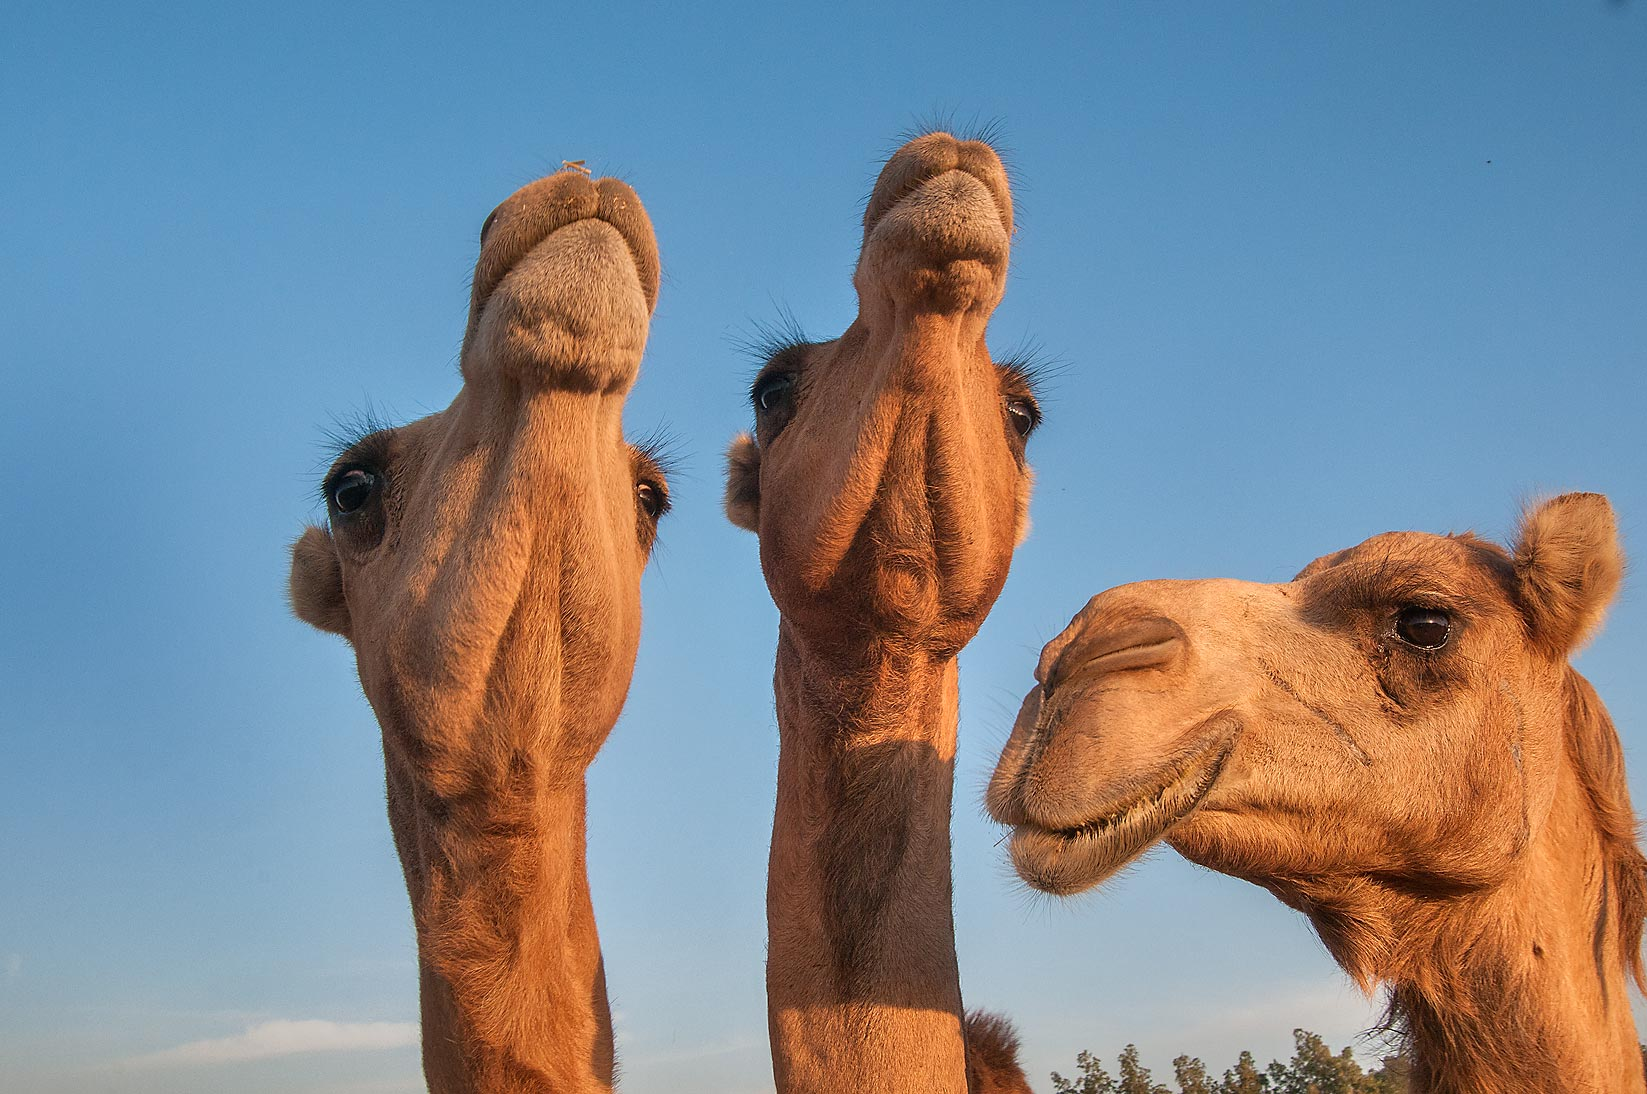 Three camel's heads in Camel Market, Wholesale Markets area. Doha, Qatar